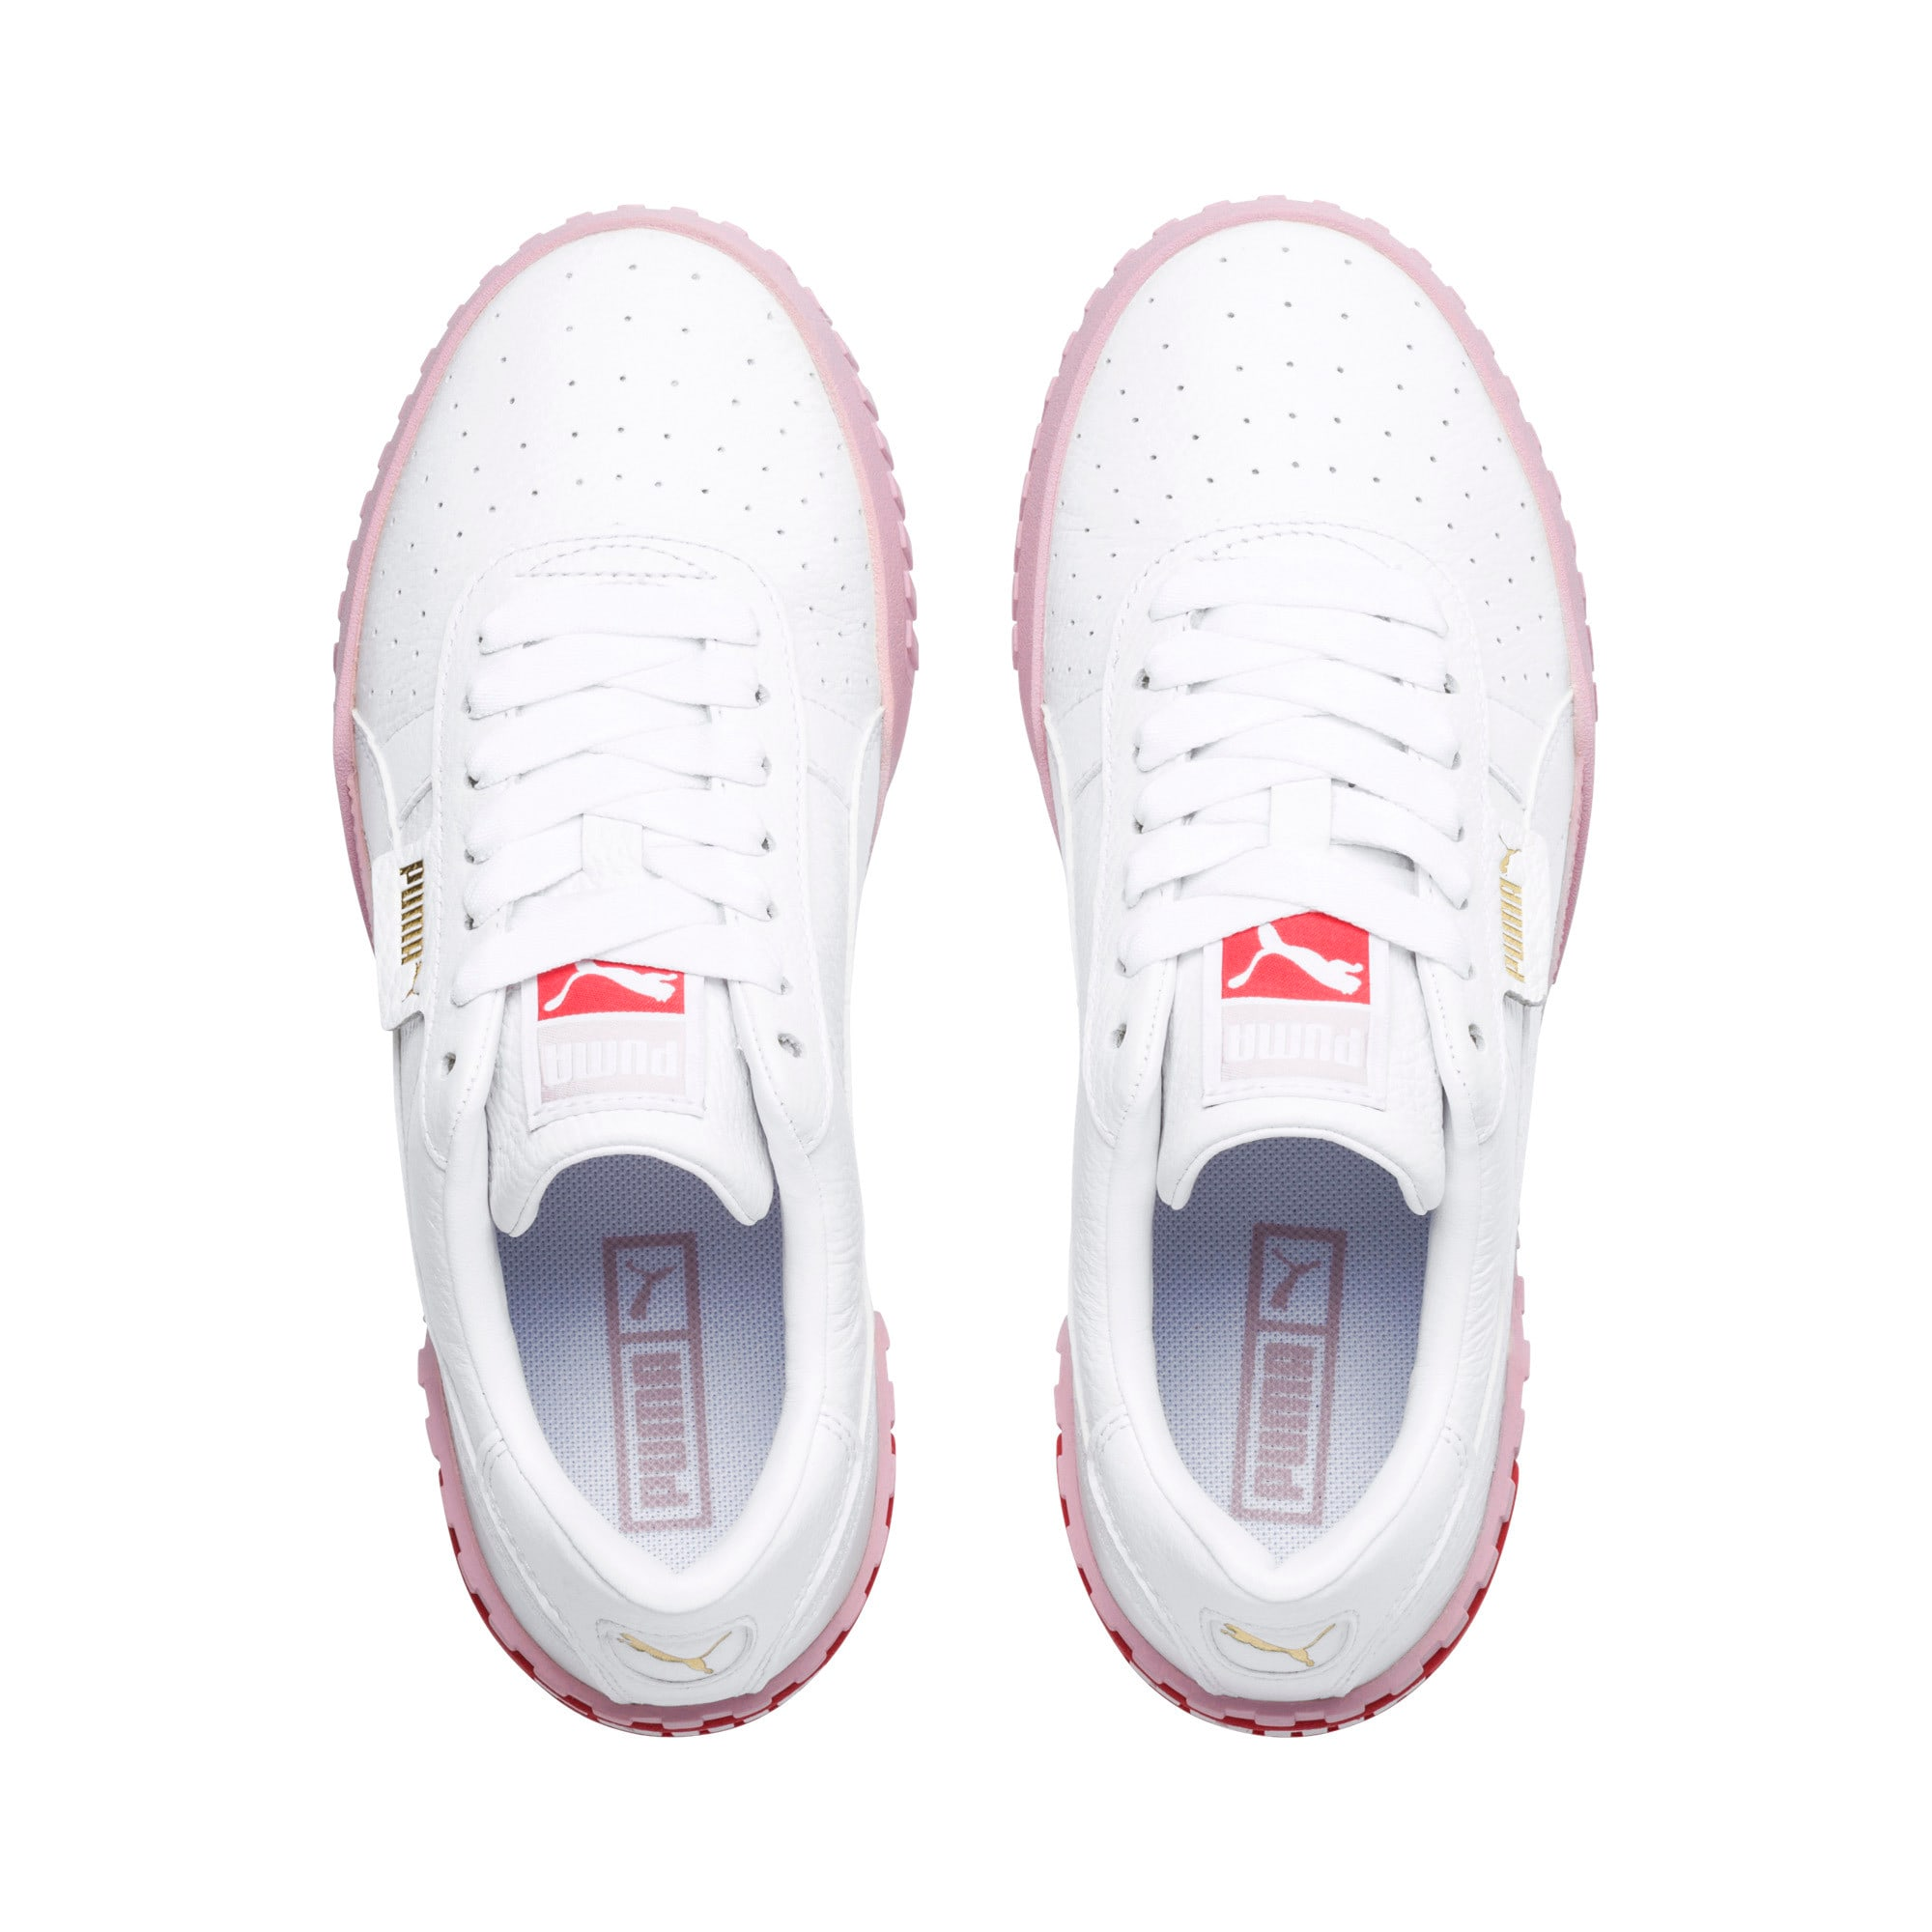 Thumbnail 7 of Cali Women's Trainers, Puma White-Pale Pink, medium